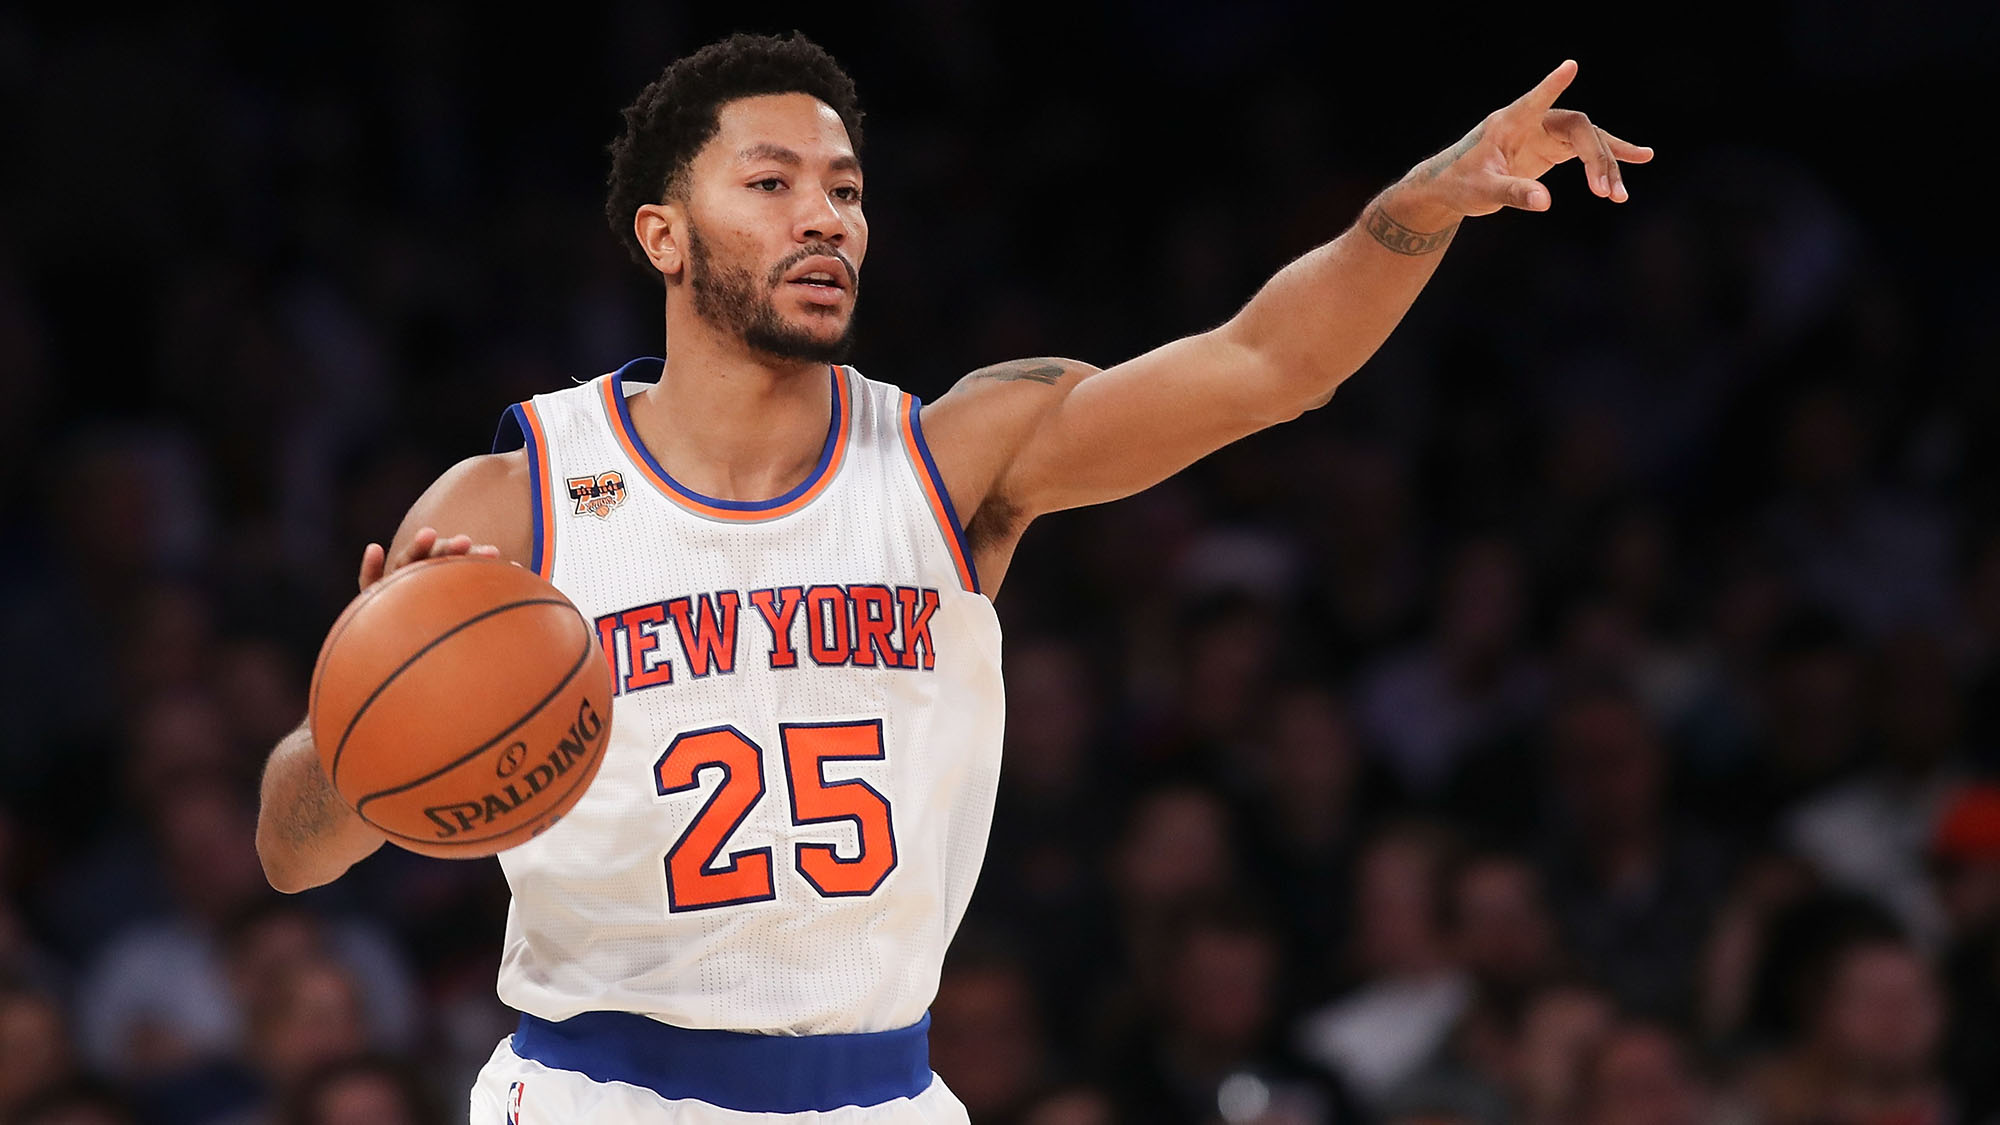 Derrick Rose to Seek Max Deal in Free Agency